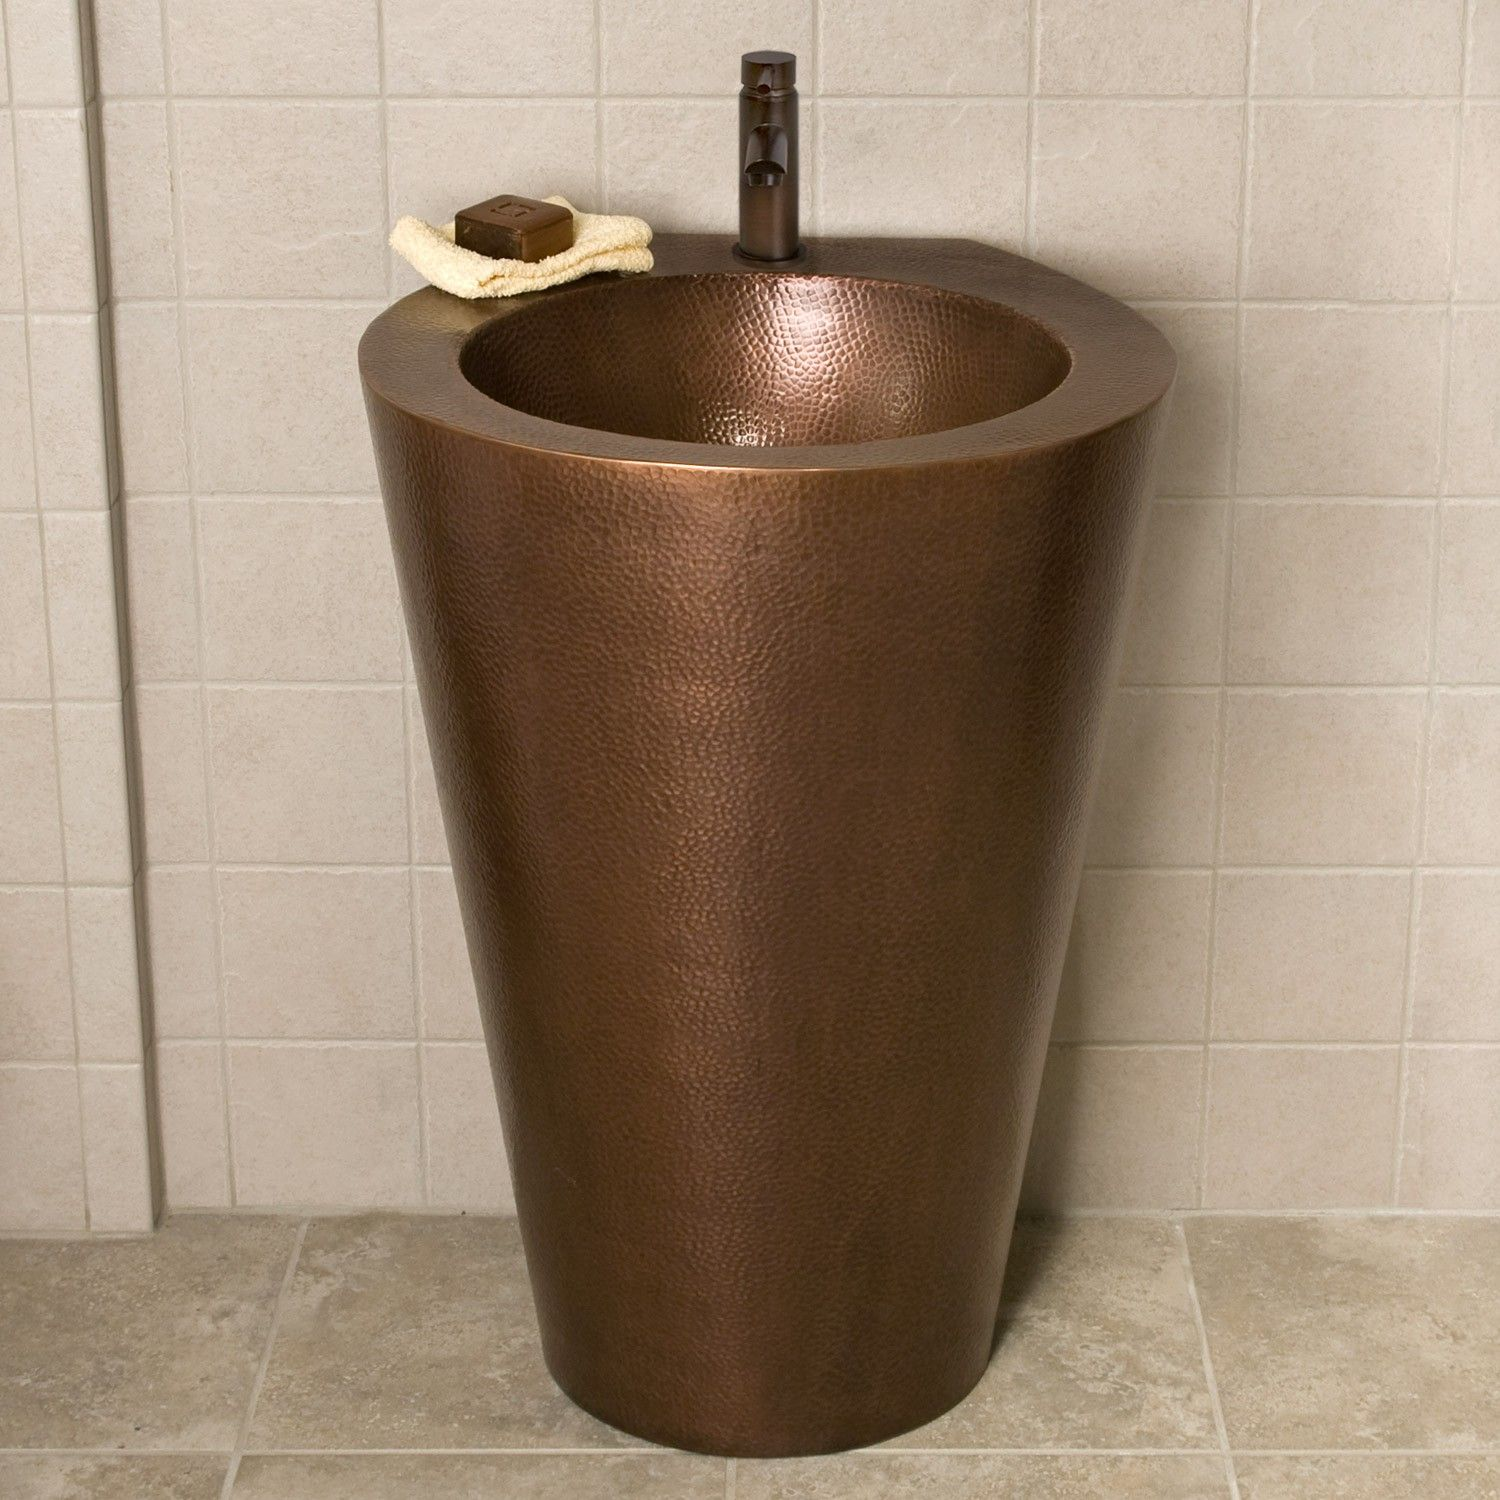 Modern Hammered Copper Pedestal Sink Emily and Mike